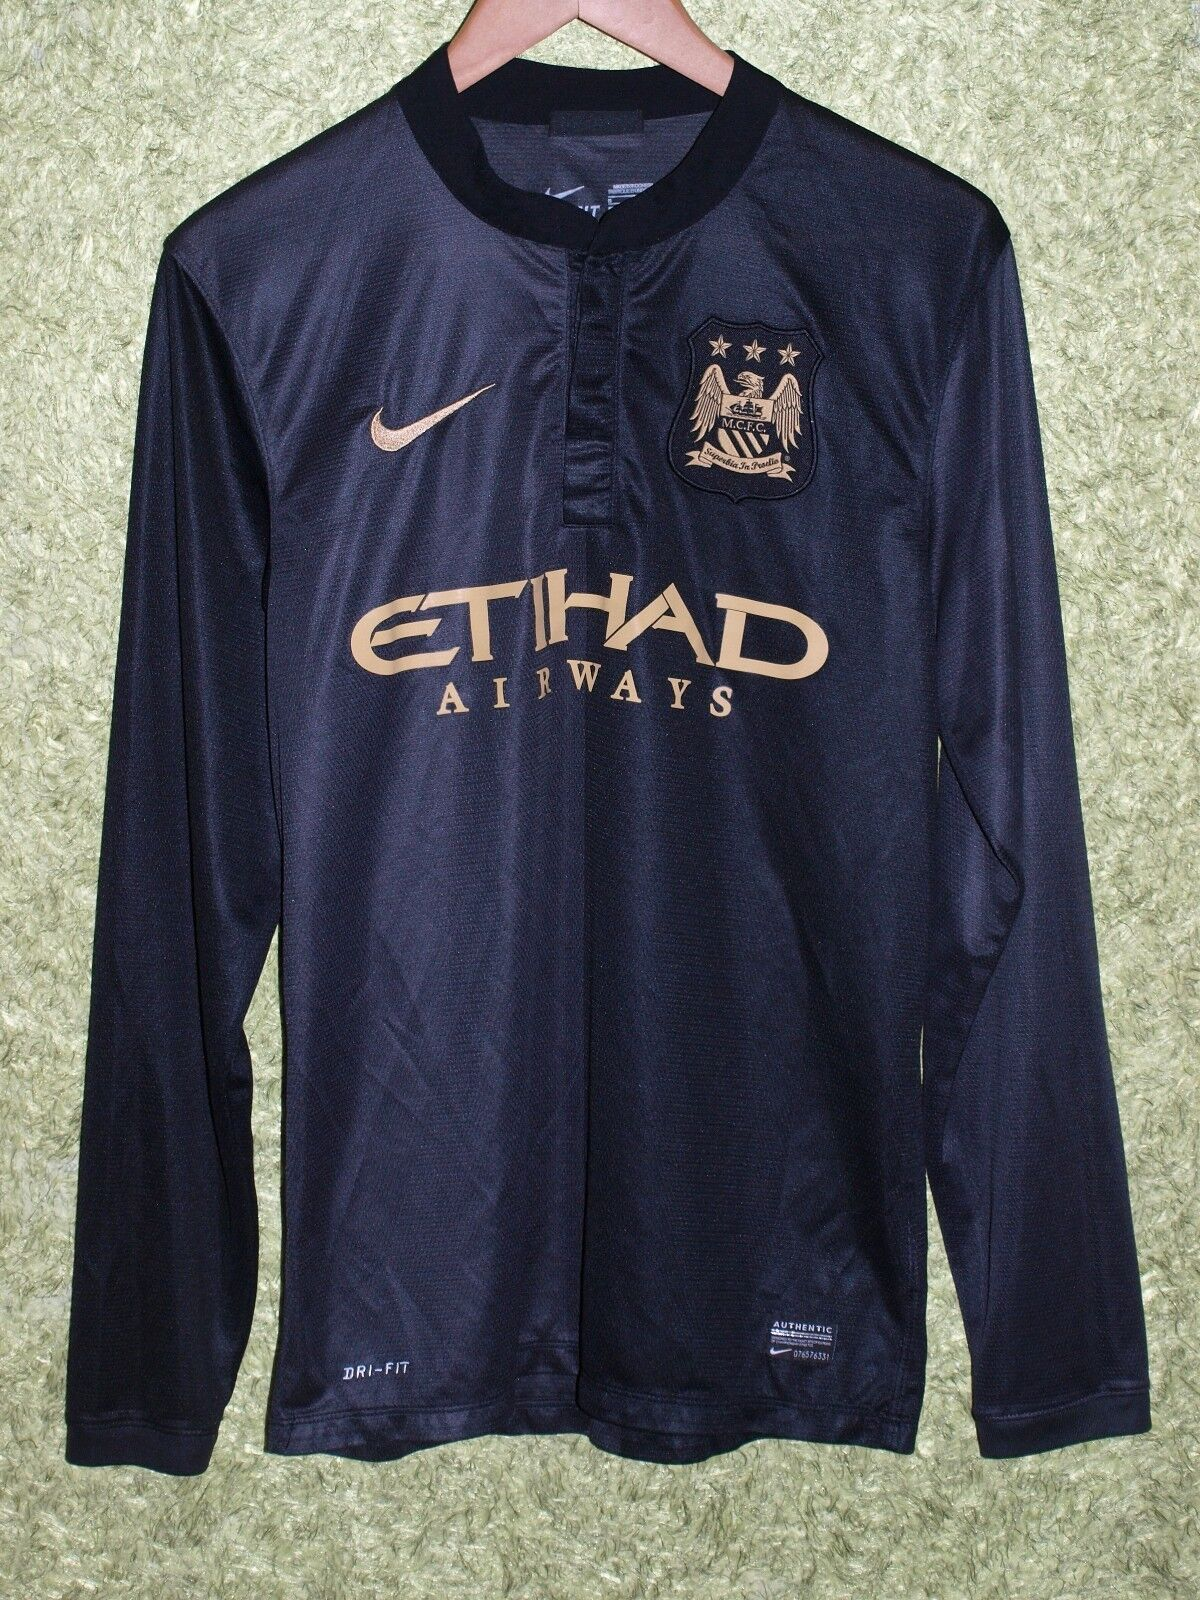 9a87e4d06 MANCHESTER CITY 2013 2014 LONG SLEEVE AWAY FOOTBALL SHIRT JERSEY NIKE SIZE S